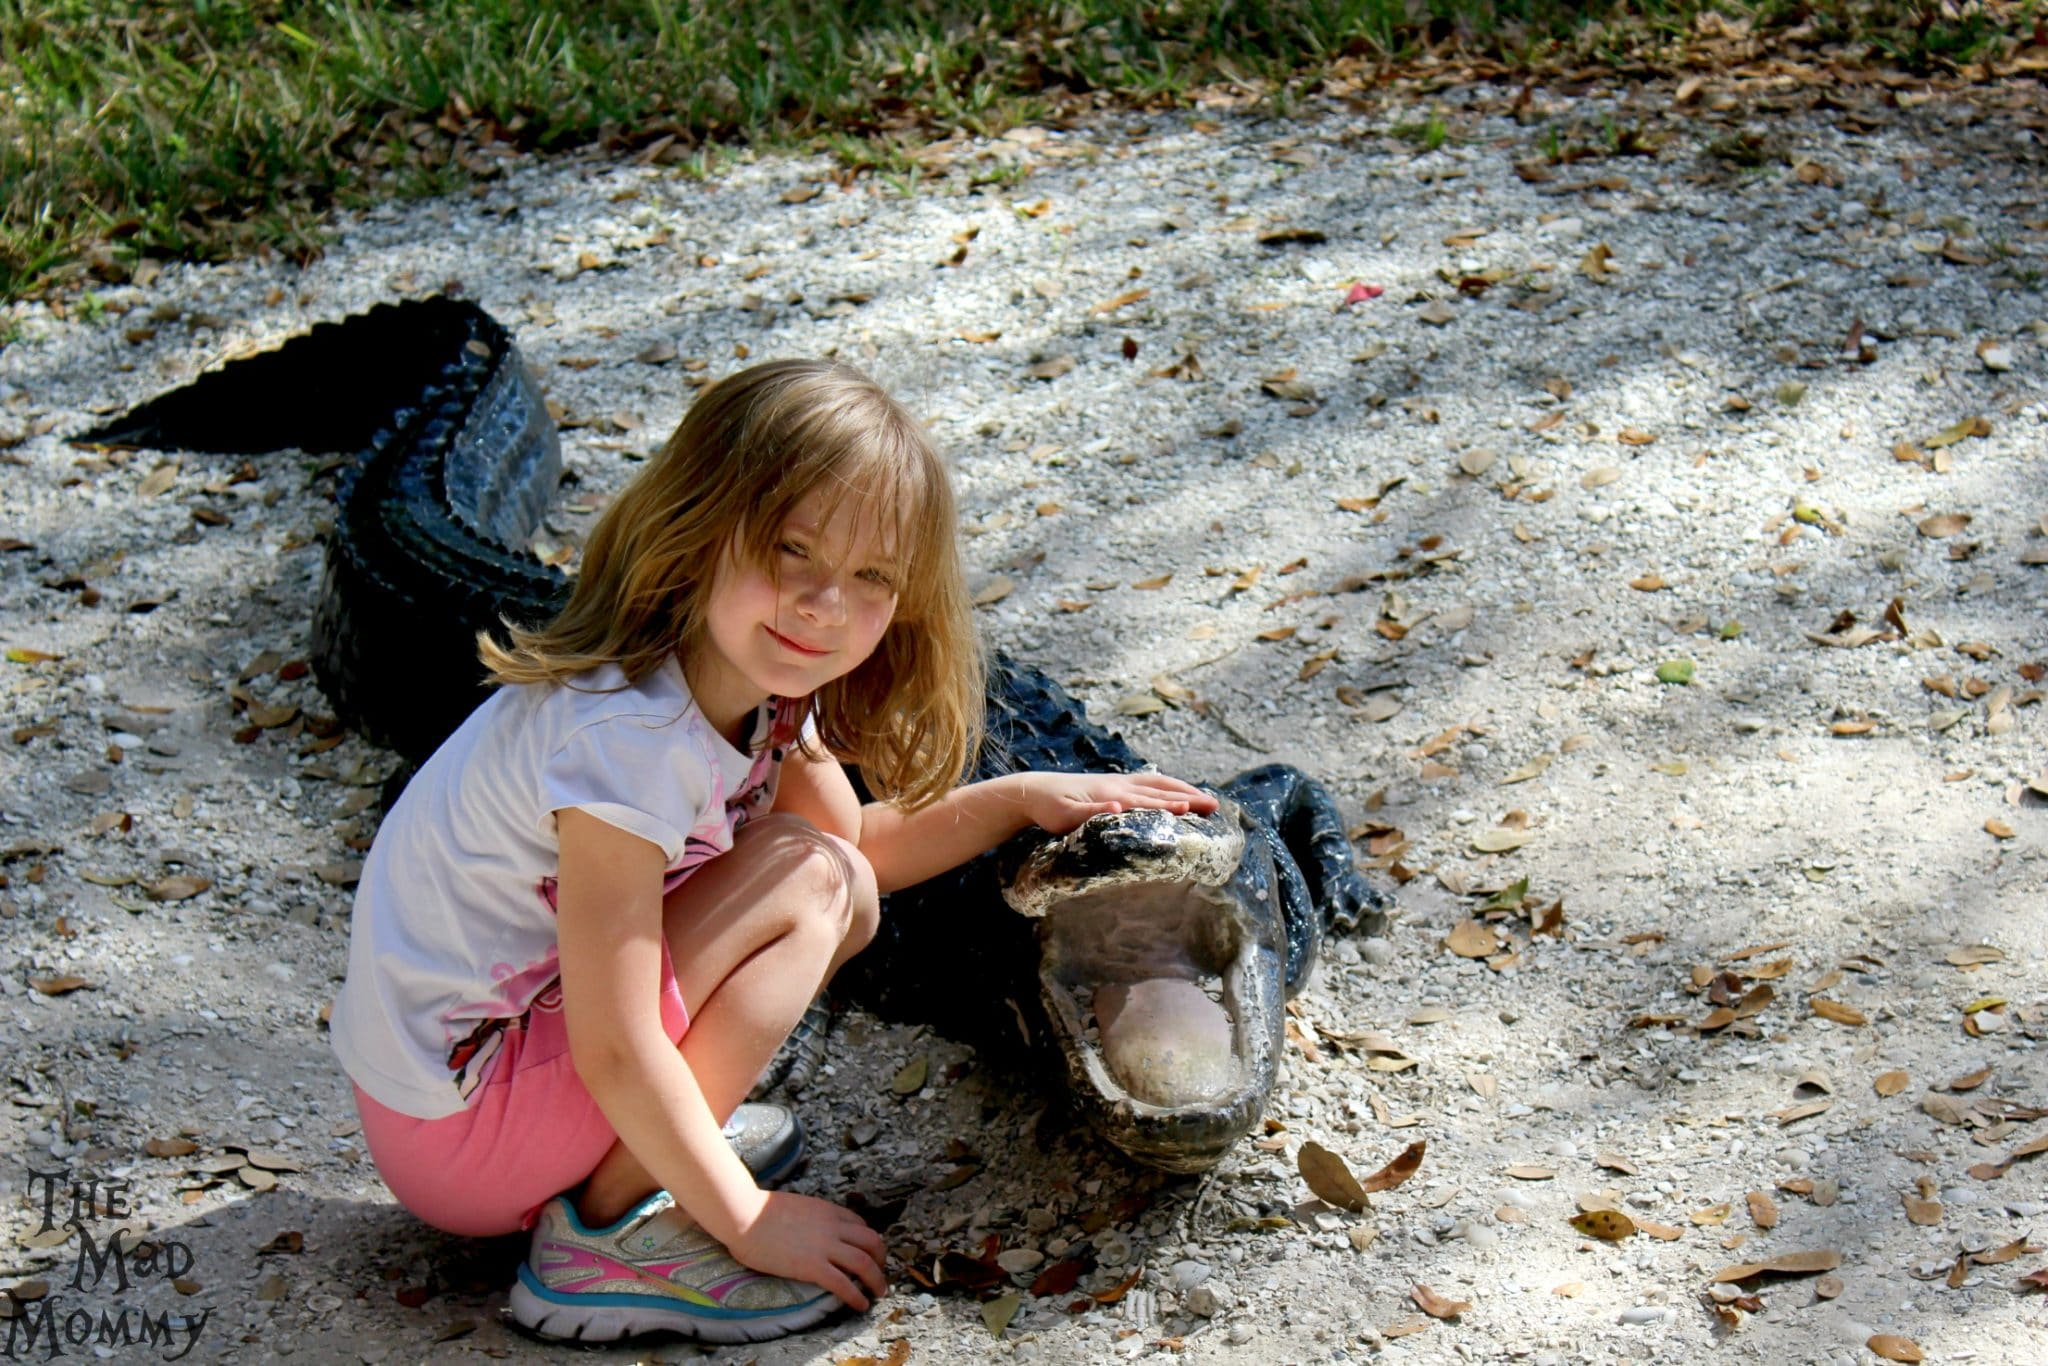 Posing with an American Alligator replica at Manatee Park.